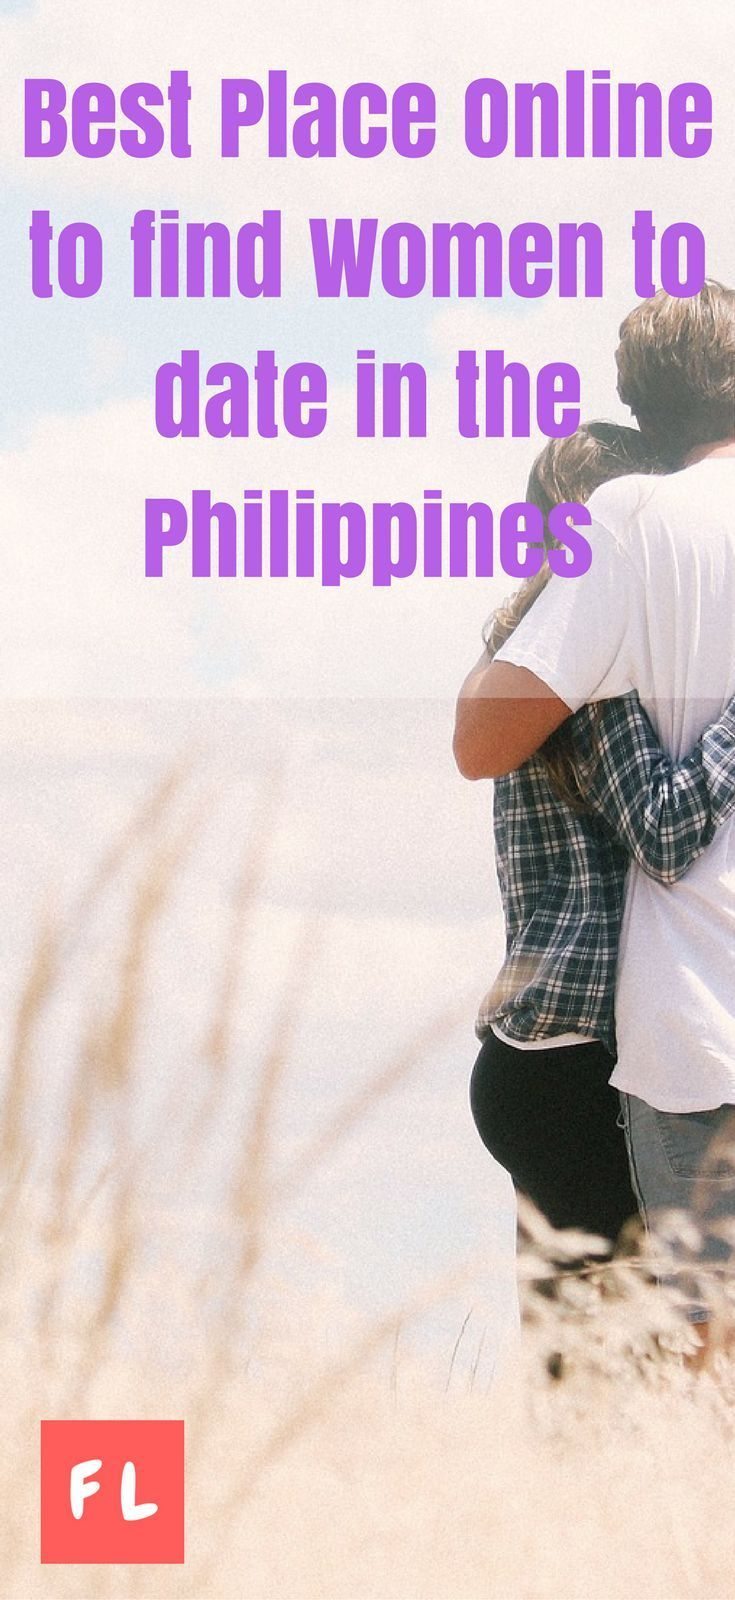 A list of 31 popular Filipino dating sites, including 11 100% free Filipino dating websites.